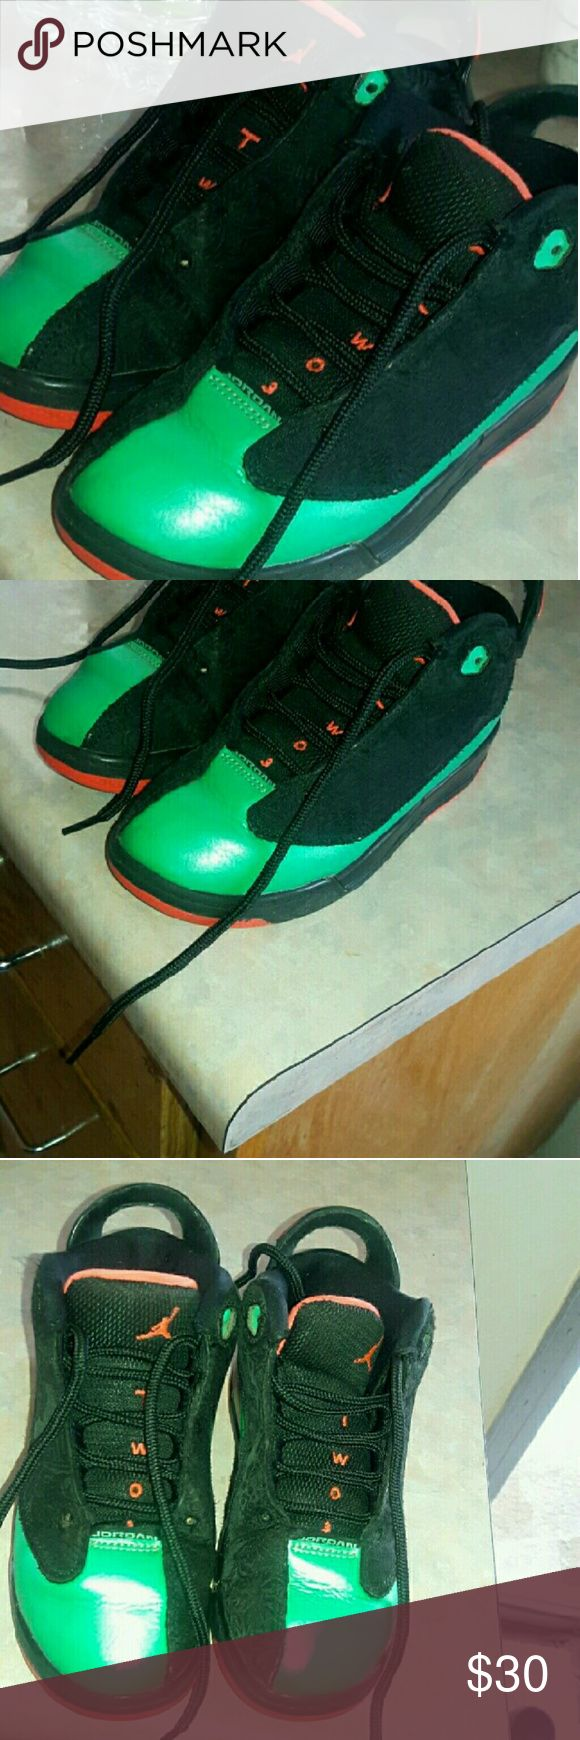 Kids Dub zero jordans unisex black and teal size13 These cool dub zeros jordans are still good condition they are preown had very stuff and wrinkle and front still nice show great price!!! Jordan  Shoes Sneakers